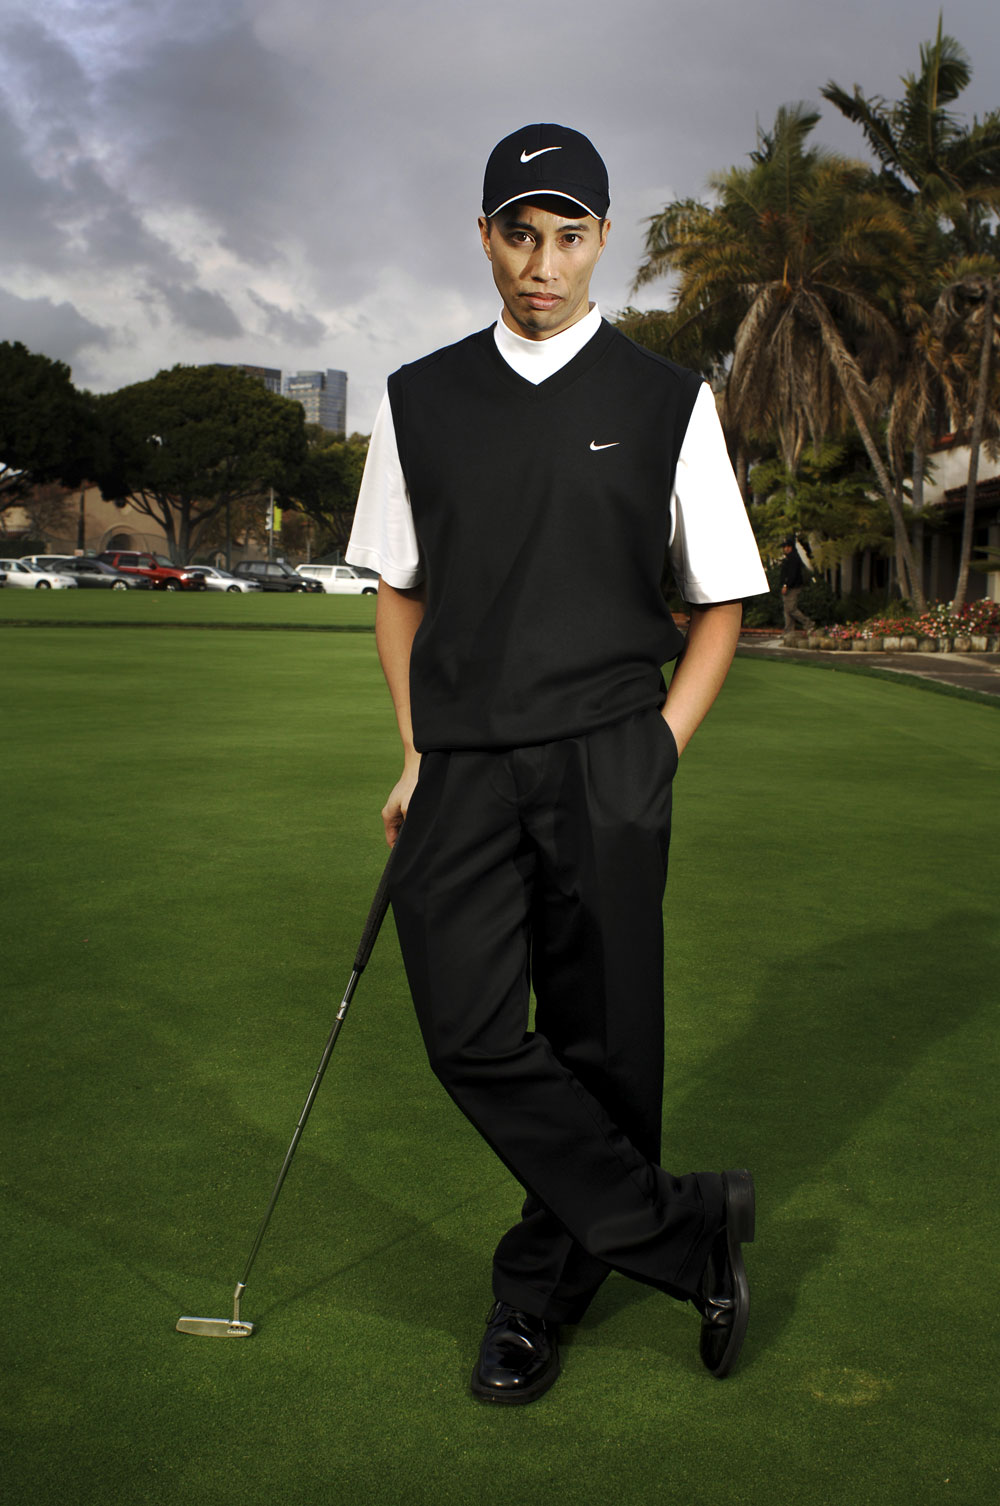 Herme Chua poses with his golf club impersonating the talented professional golfer, Tiger Woods in Beverly Hills, California. Chua has a full-time job working with computers, but offers his services as a Tiger Woods look-alike when he can.